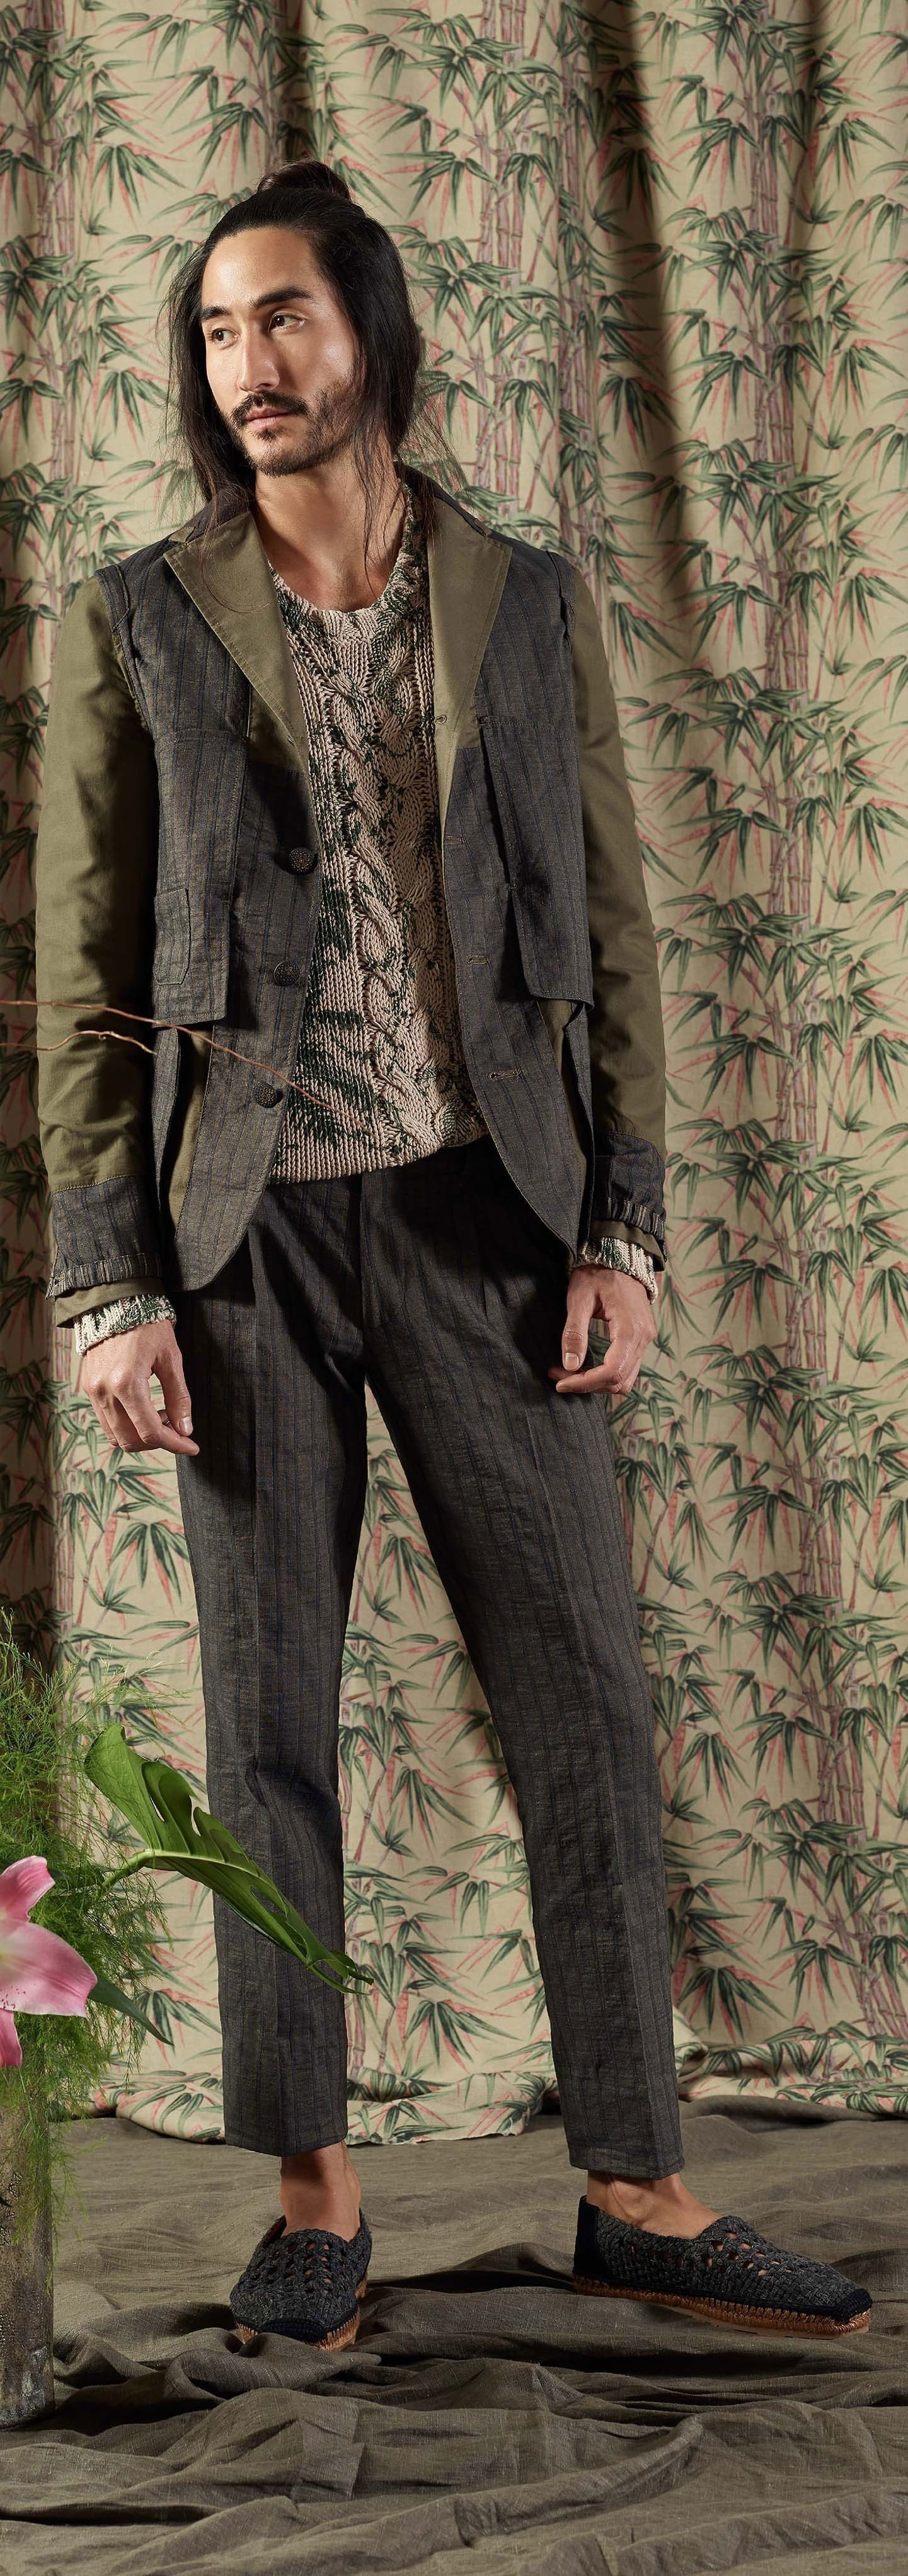 Stylish Pattern Outfit Ideas For Men To Try